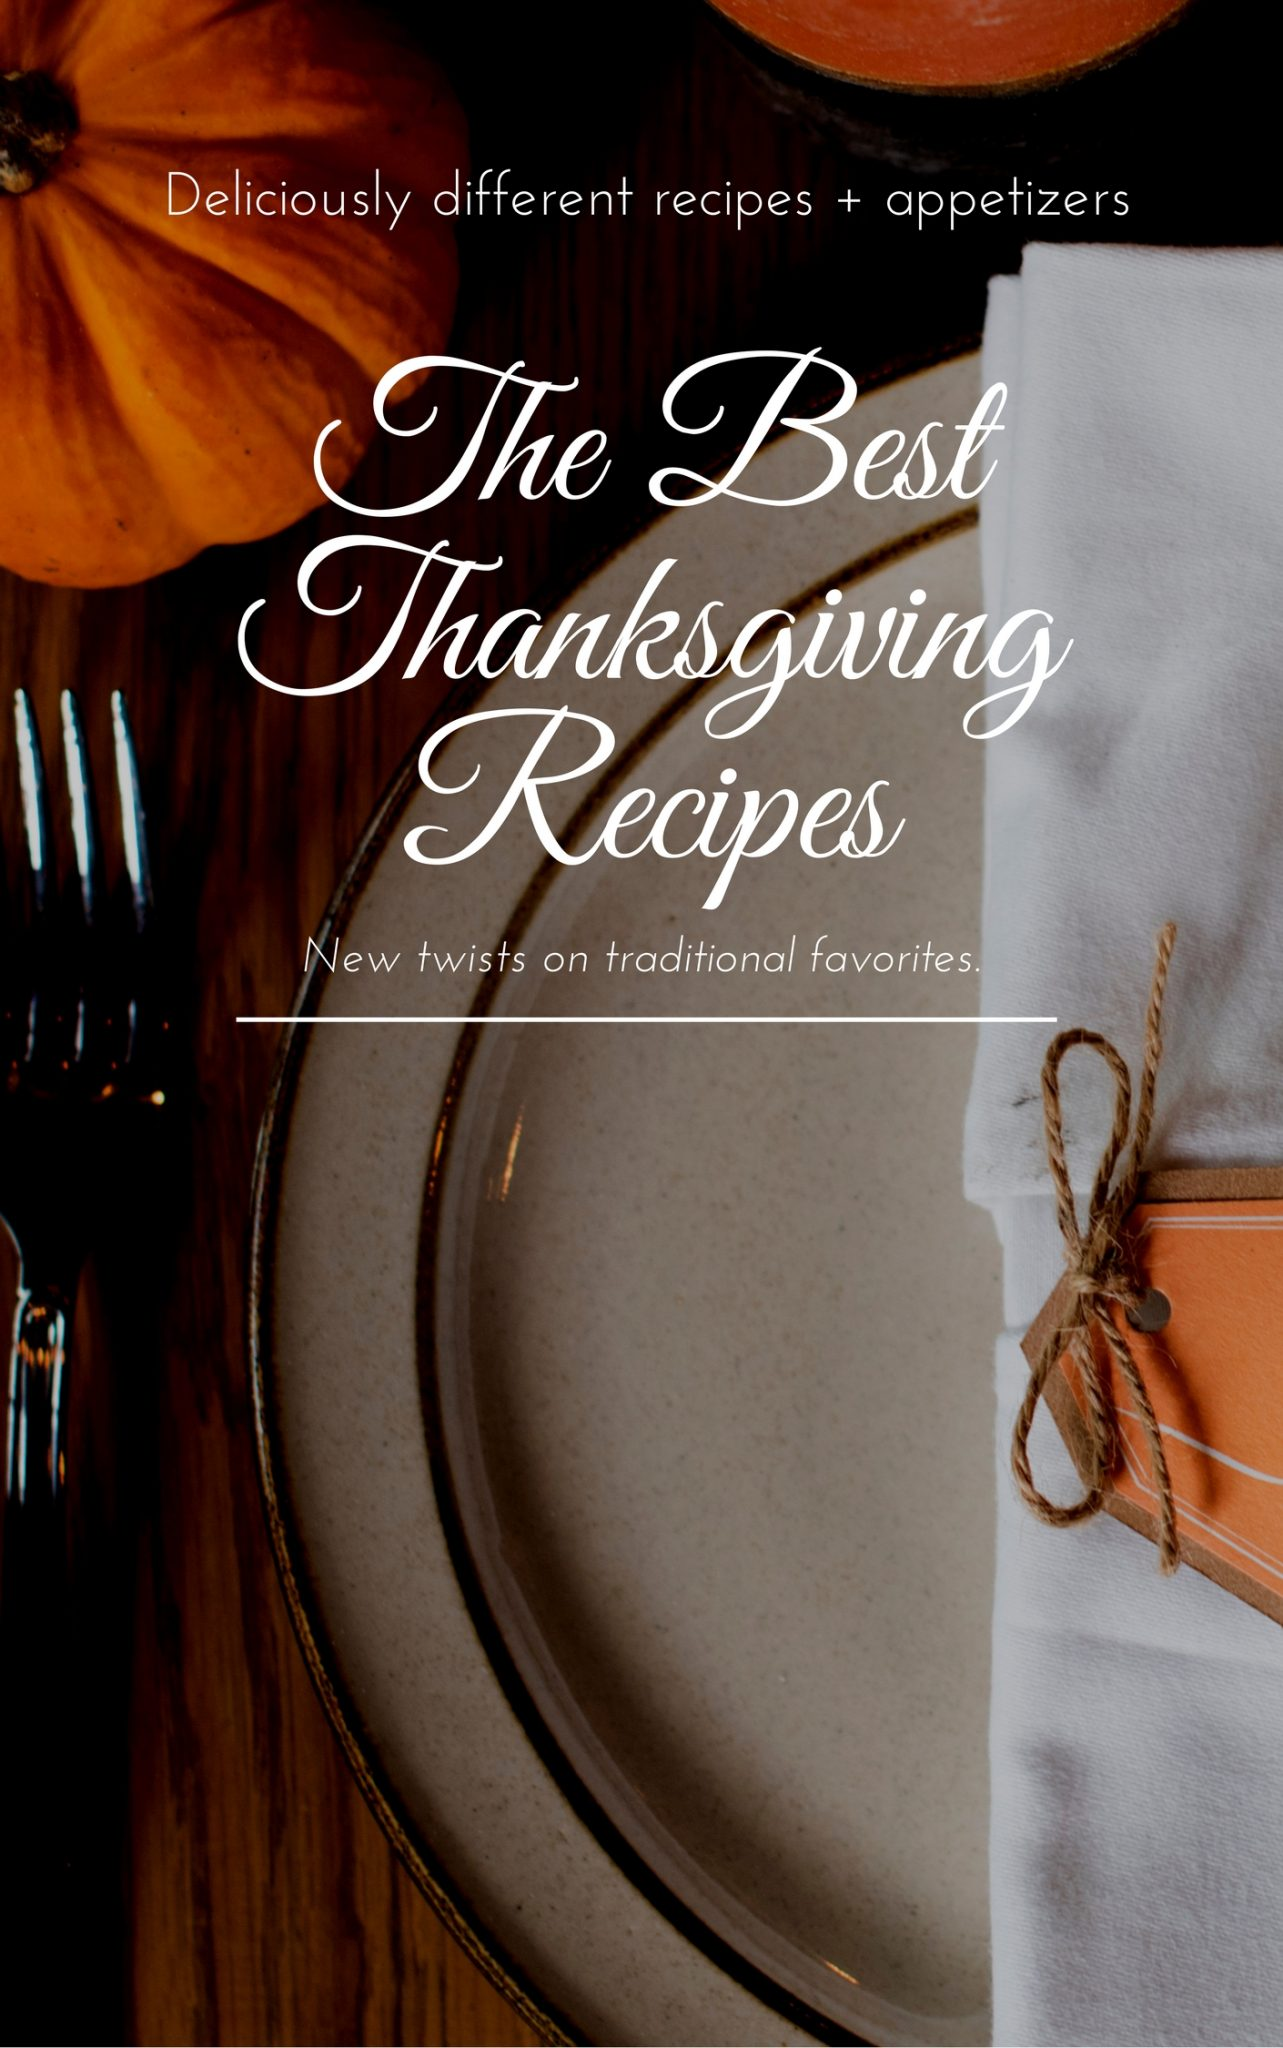 The Best Thanksgiving Recipes + Thanksgiving Appetizers That Will Make Your Turkey Day #BestThanksgivingRecipes #ThanksgivingRecipes #ThanksgivingAppetizers